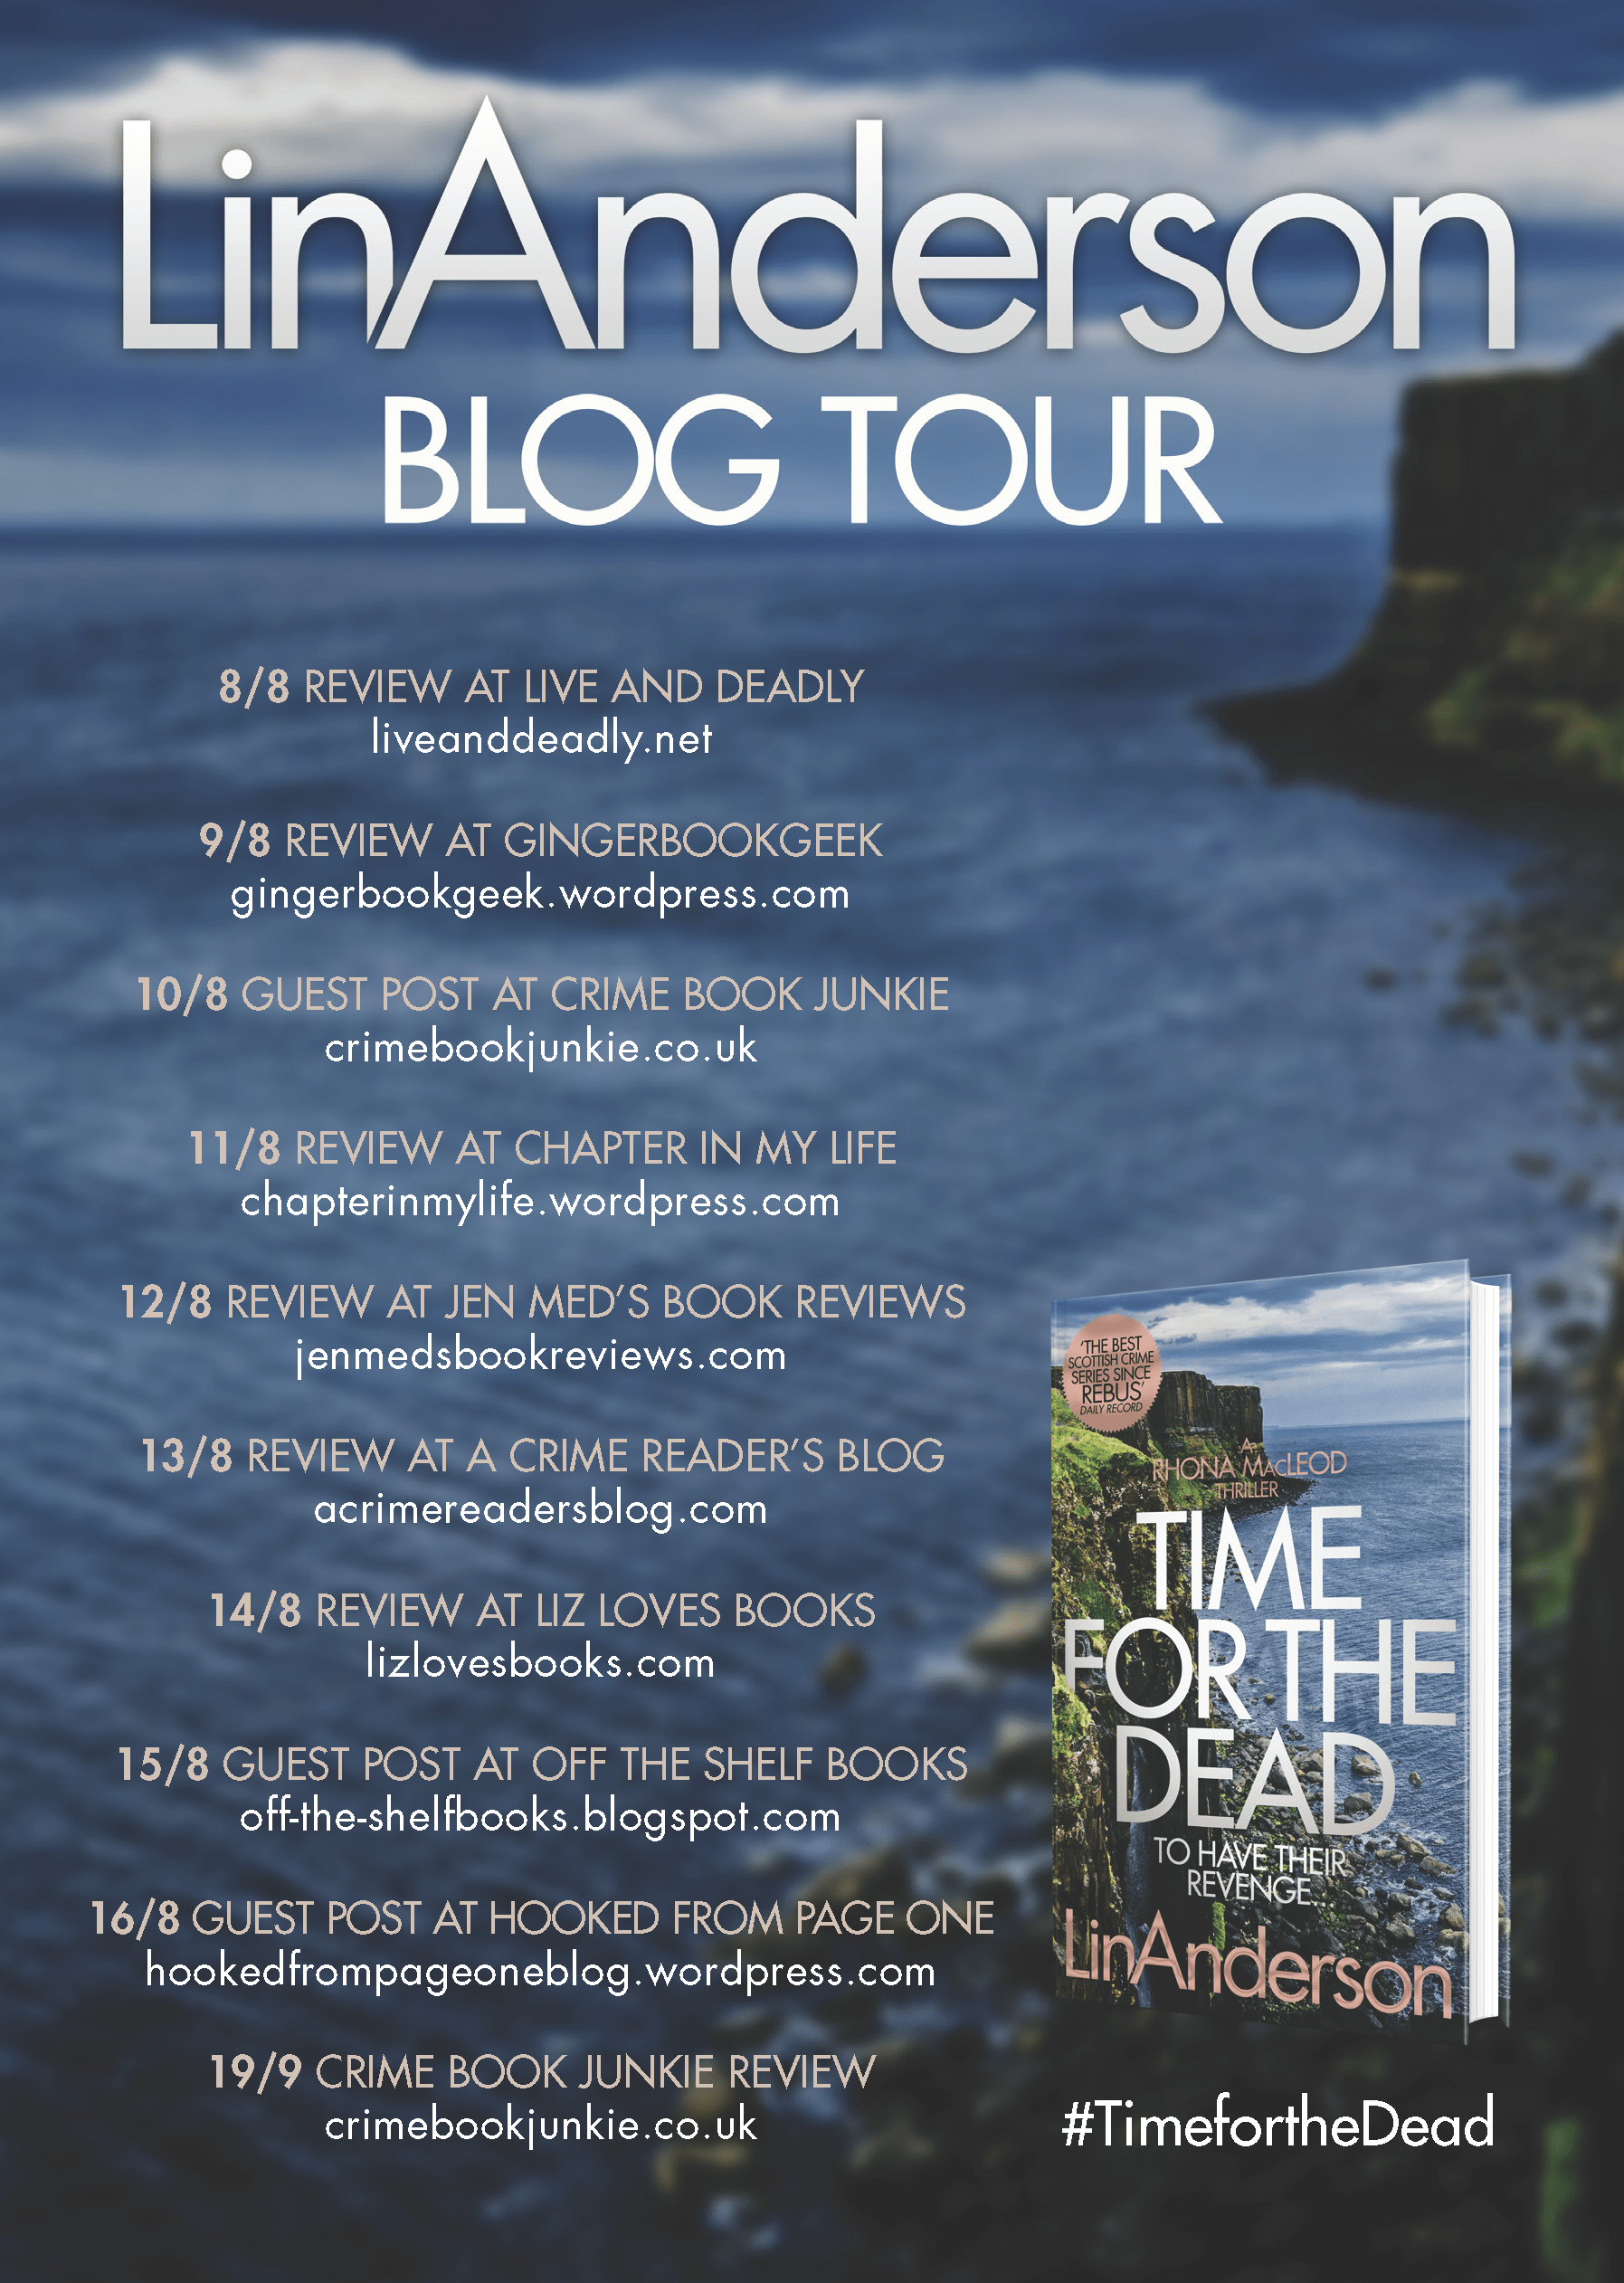 Time for the Dead_A5 Blog Tour Poster_v1